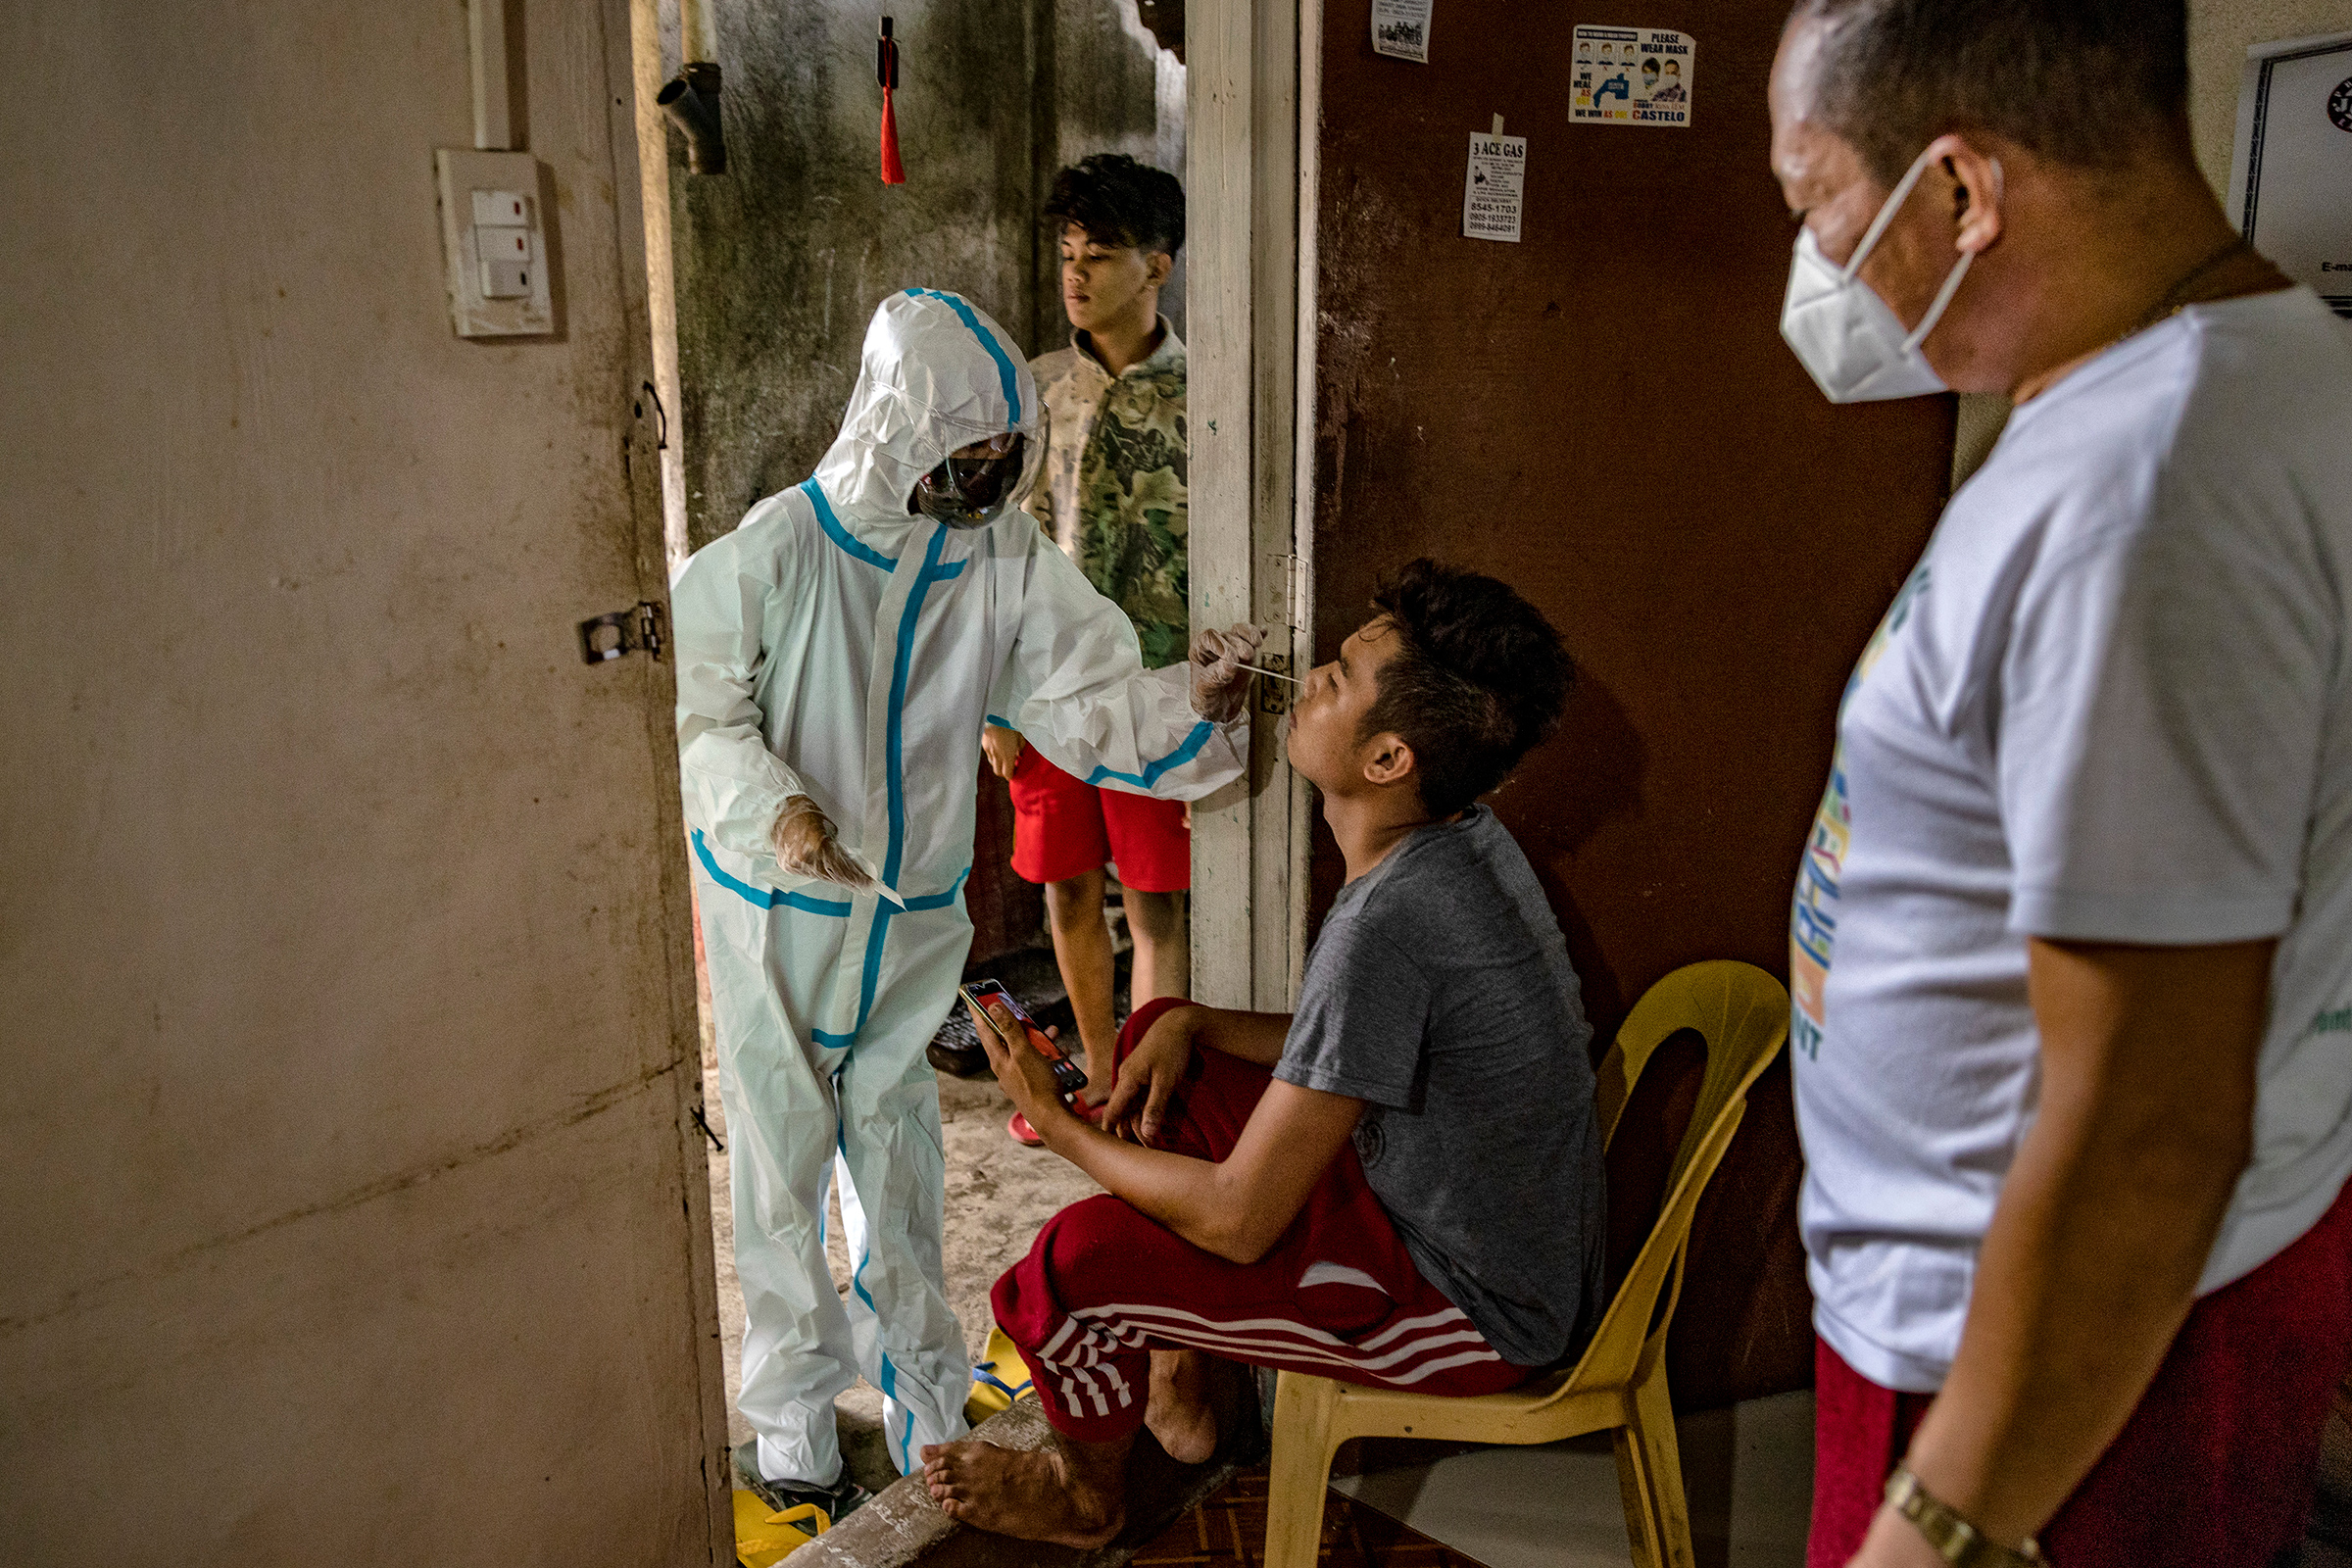 Katrina Pelotin, a field nurse from the City Epidemiology and Surveillance Unit, conducts a swab test on a family member of a COVID-19 patient isolating at home as part of contact tracing efforts in Quezon City, Metro Manila, on April 15.